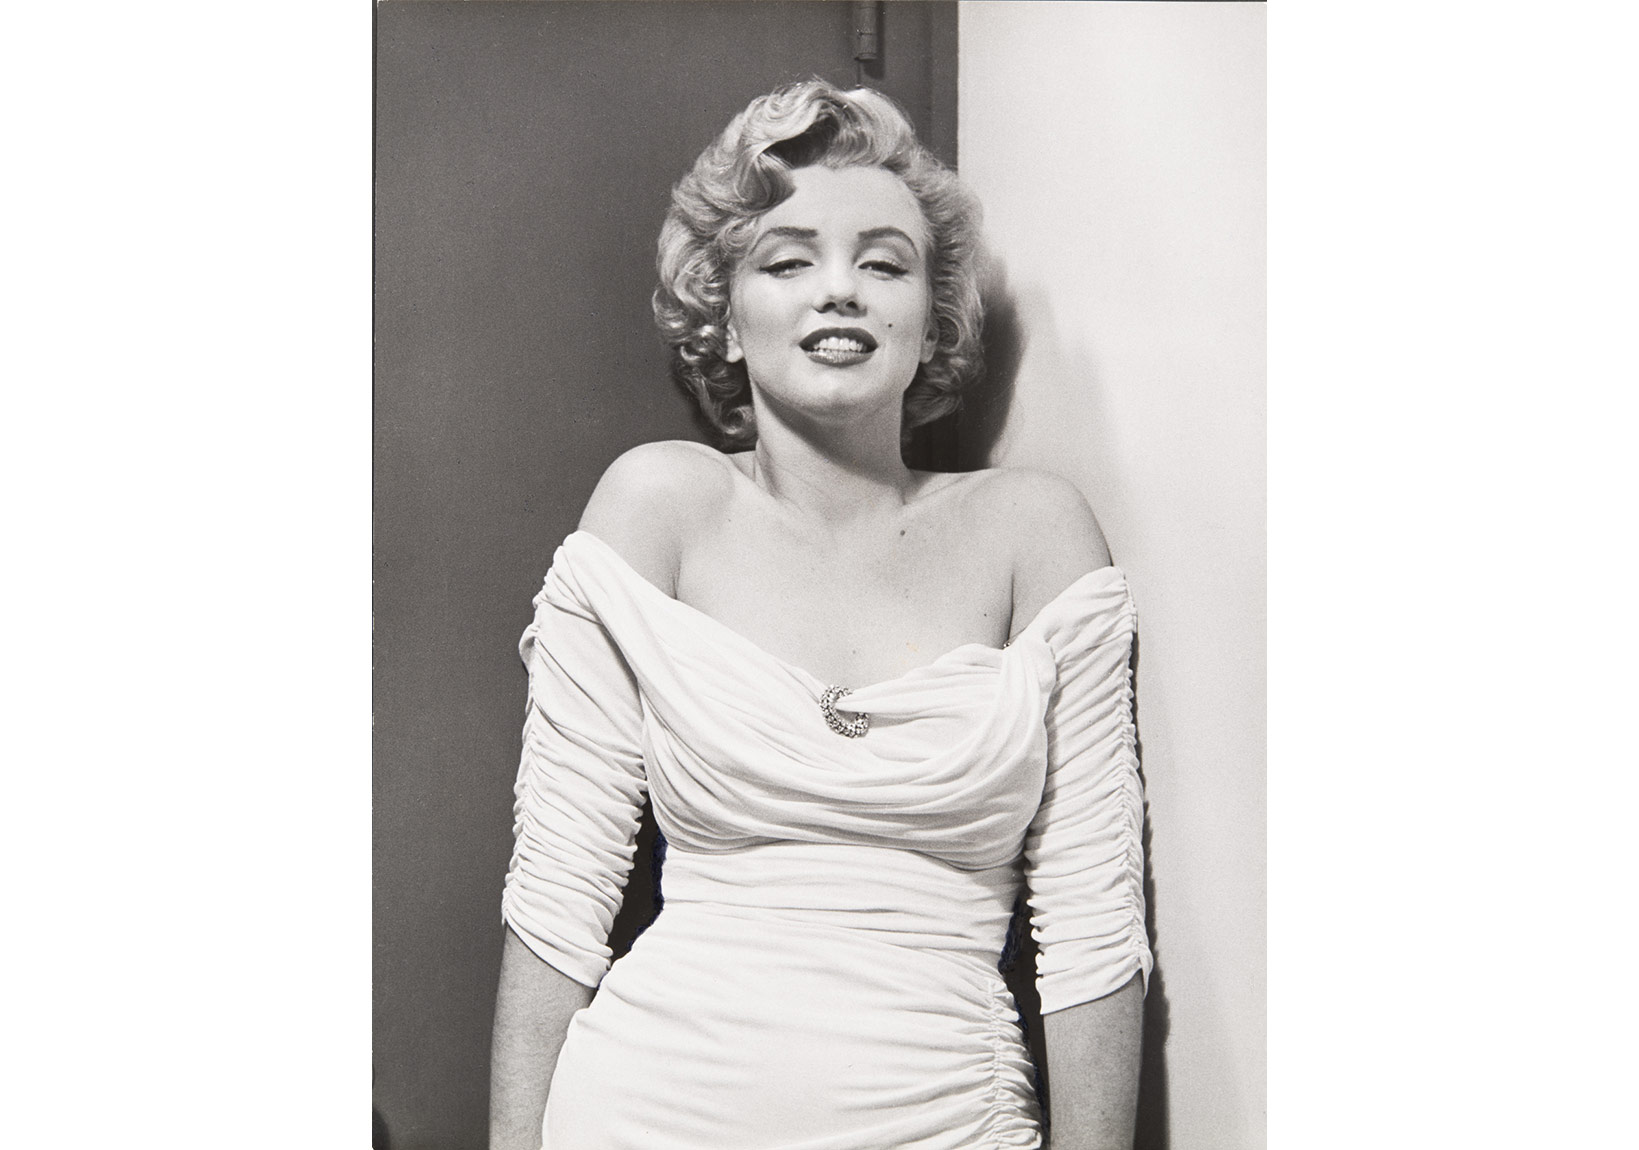 Philippe Halsman, 'Marilyn Monroe', 1952, Archives Philippe Halsman © 2015 Philippe Halsman Archive/Magnum Photos